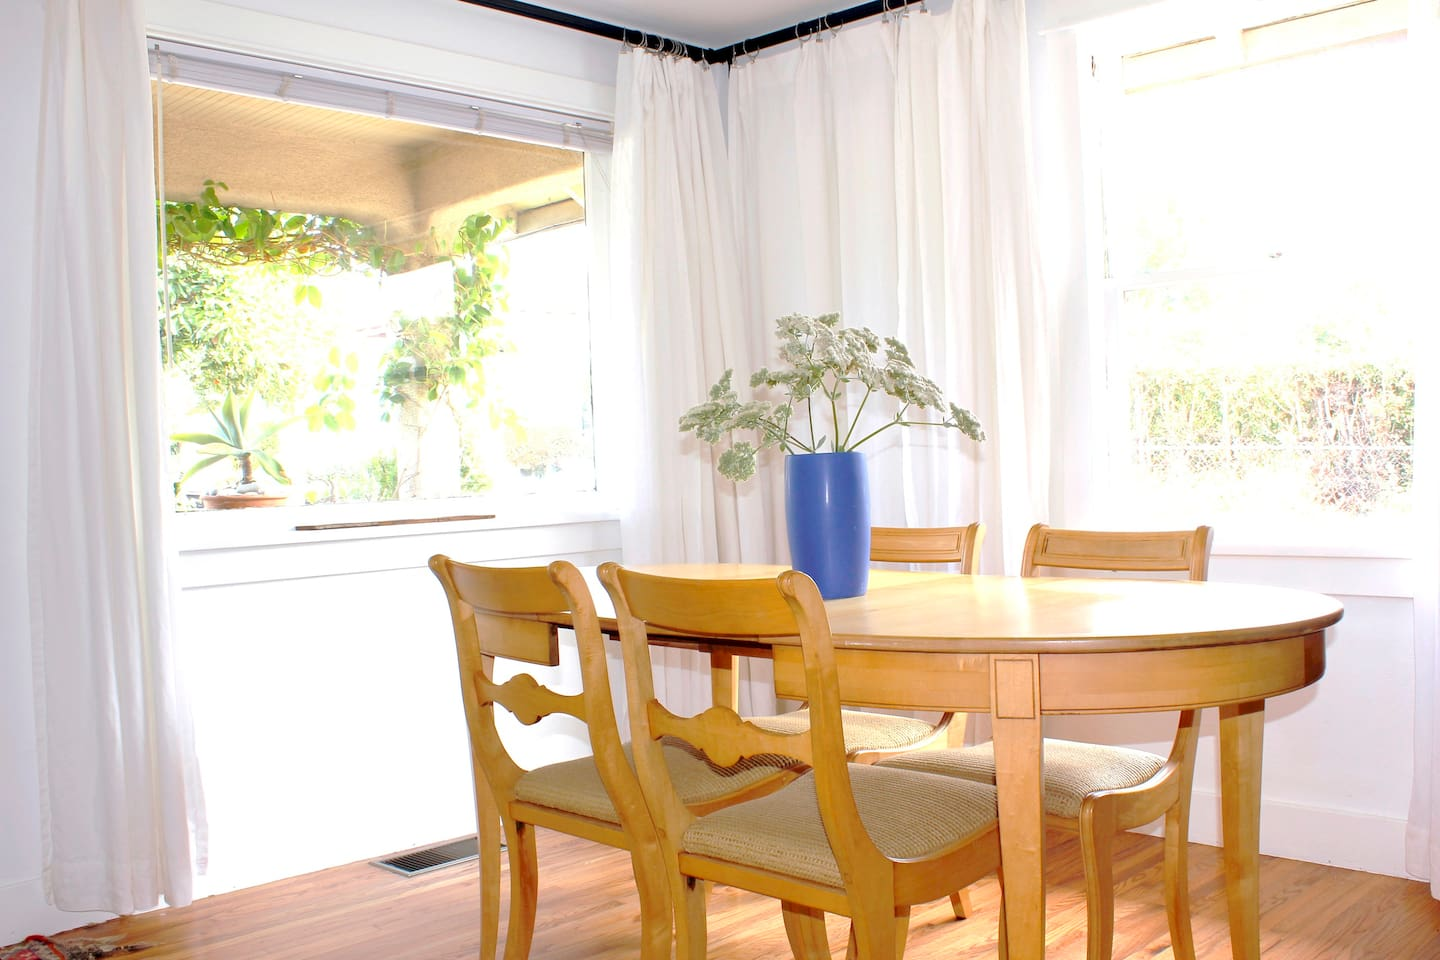 The dining room, with a view of the Santa Ynez mountains, opens onto the front porch.